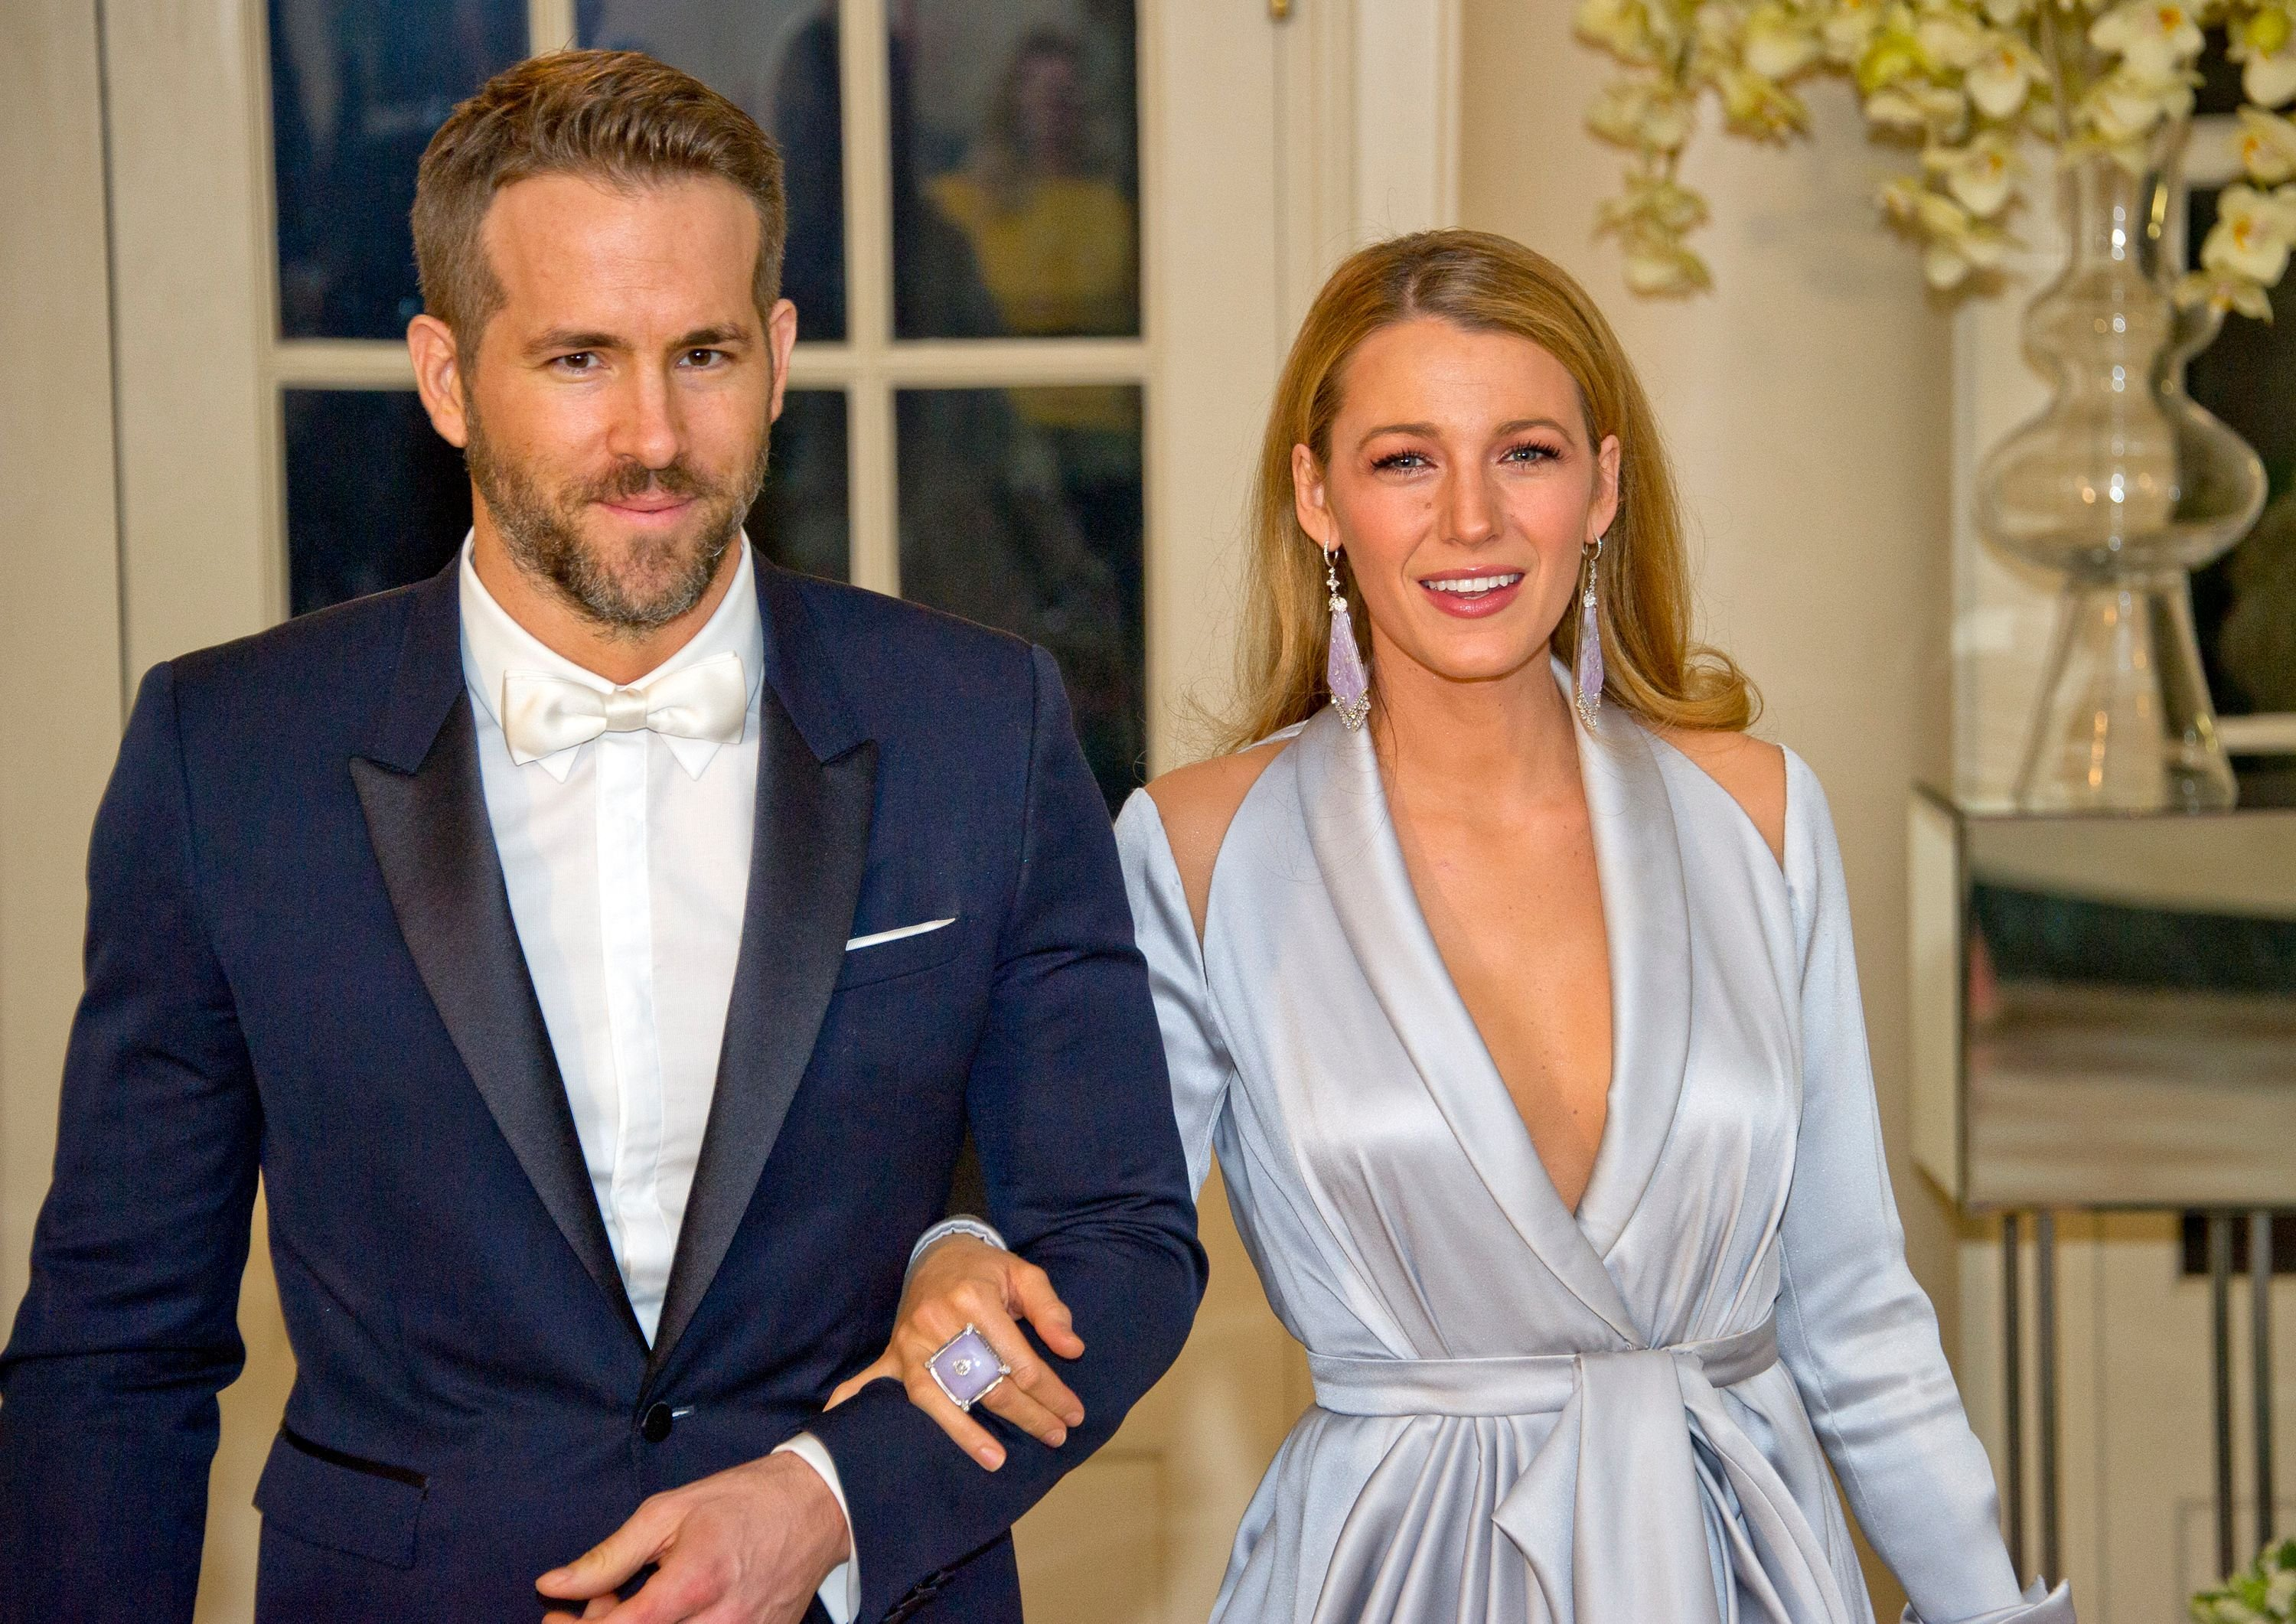 Ryan Reynolds and Blake Lively at the State Dinner in honor of Prime Minister Trudeau at the White House March in 2016 | Source: Getty Images